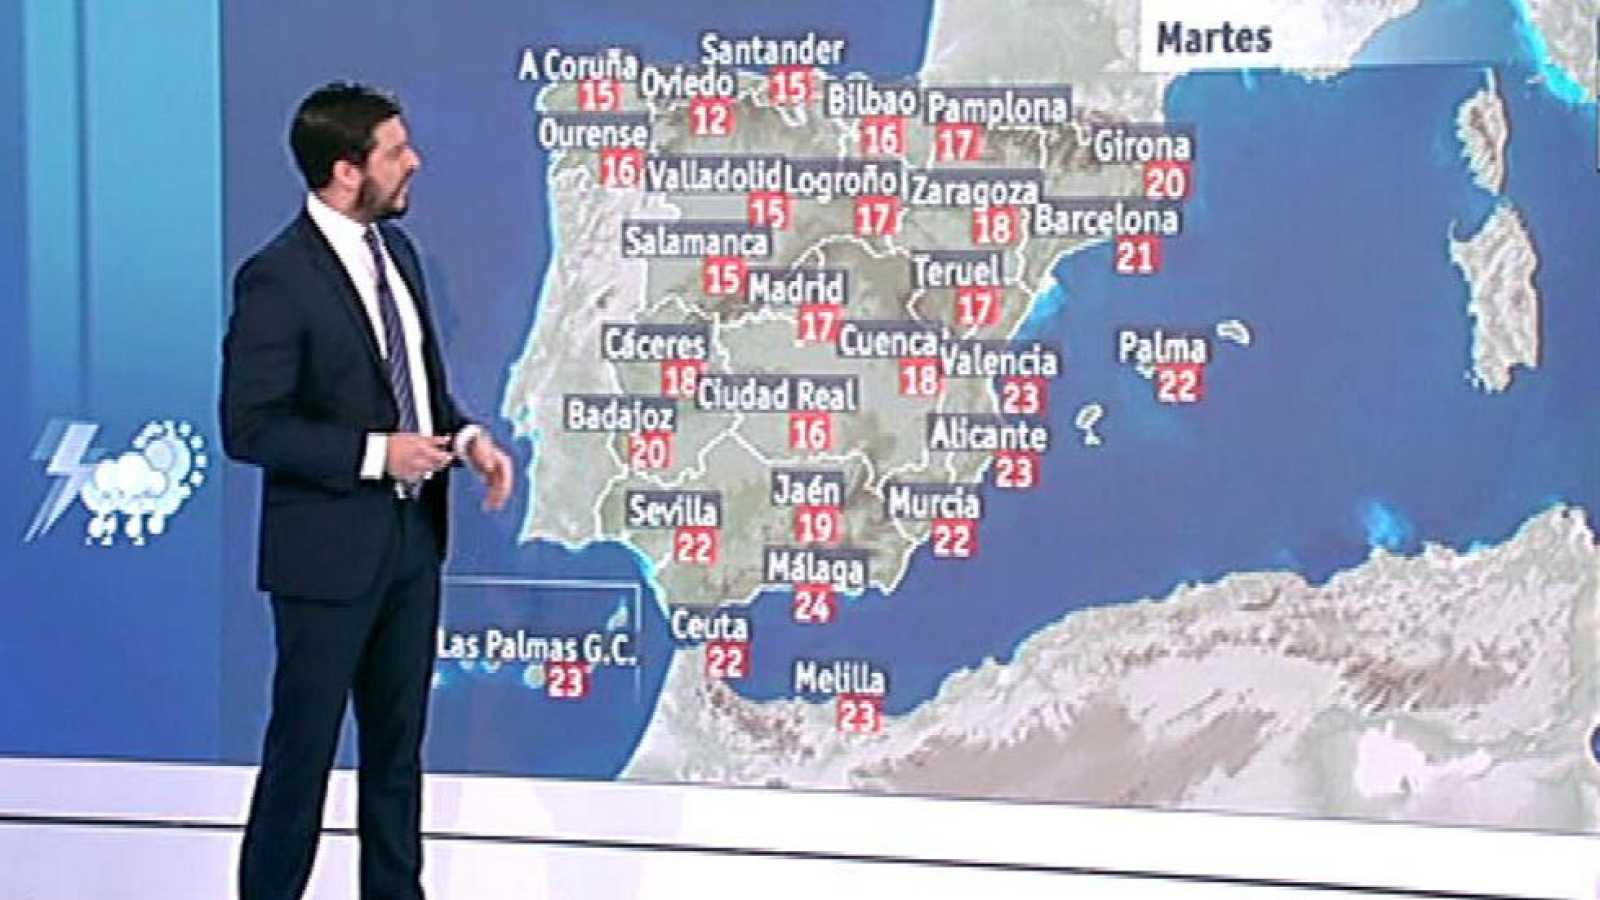 Tiempo variable, con lluvias ocasionales y temperaturas agradables